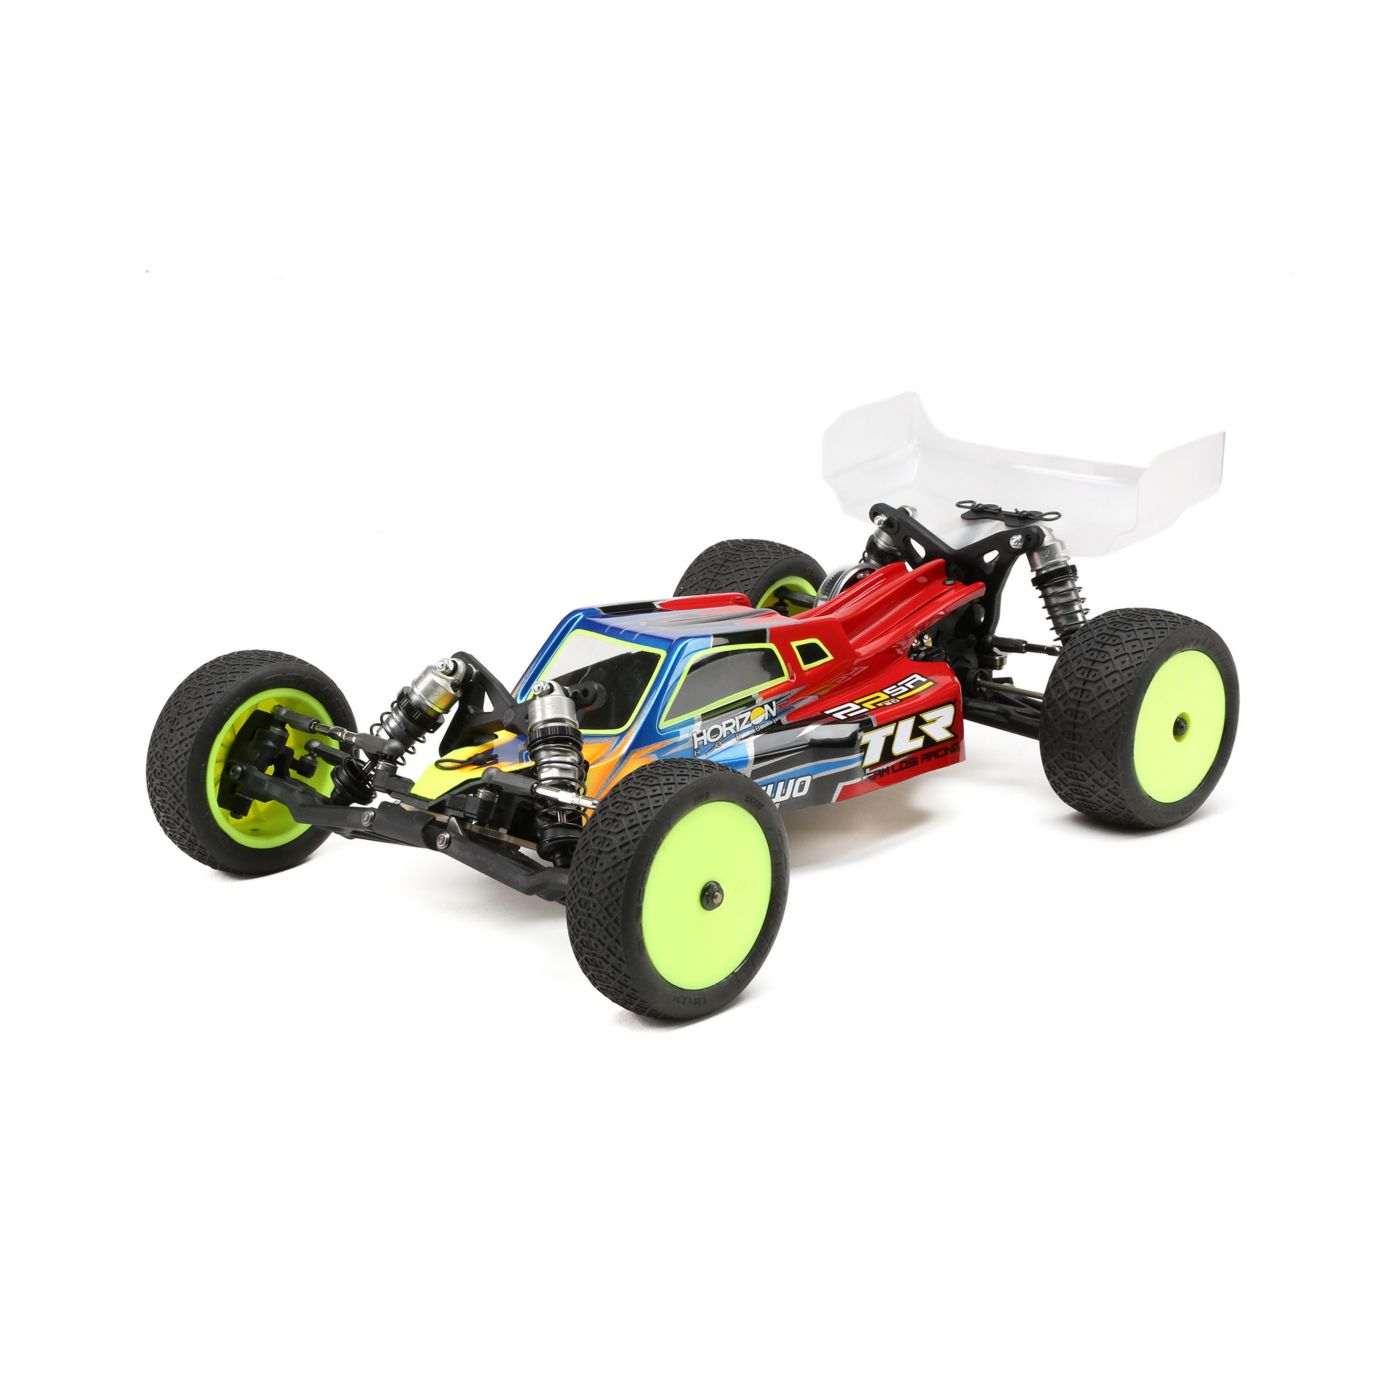 The 22 3 0 SPEC Racer Buggy from TLR